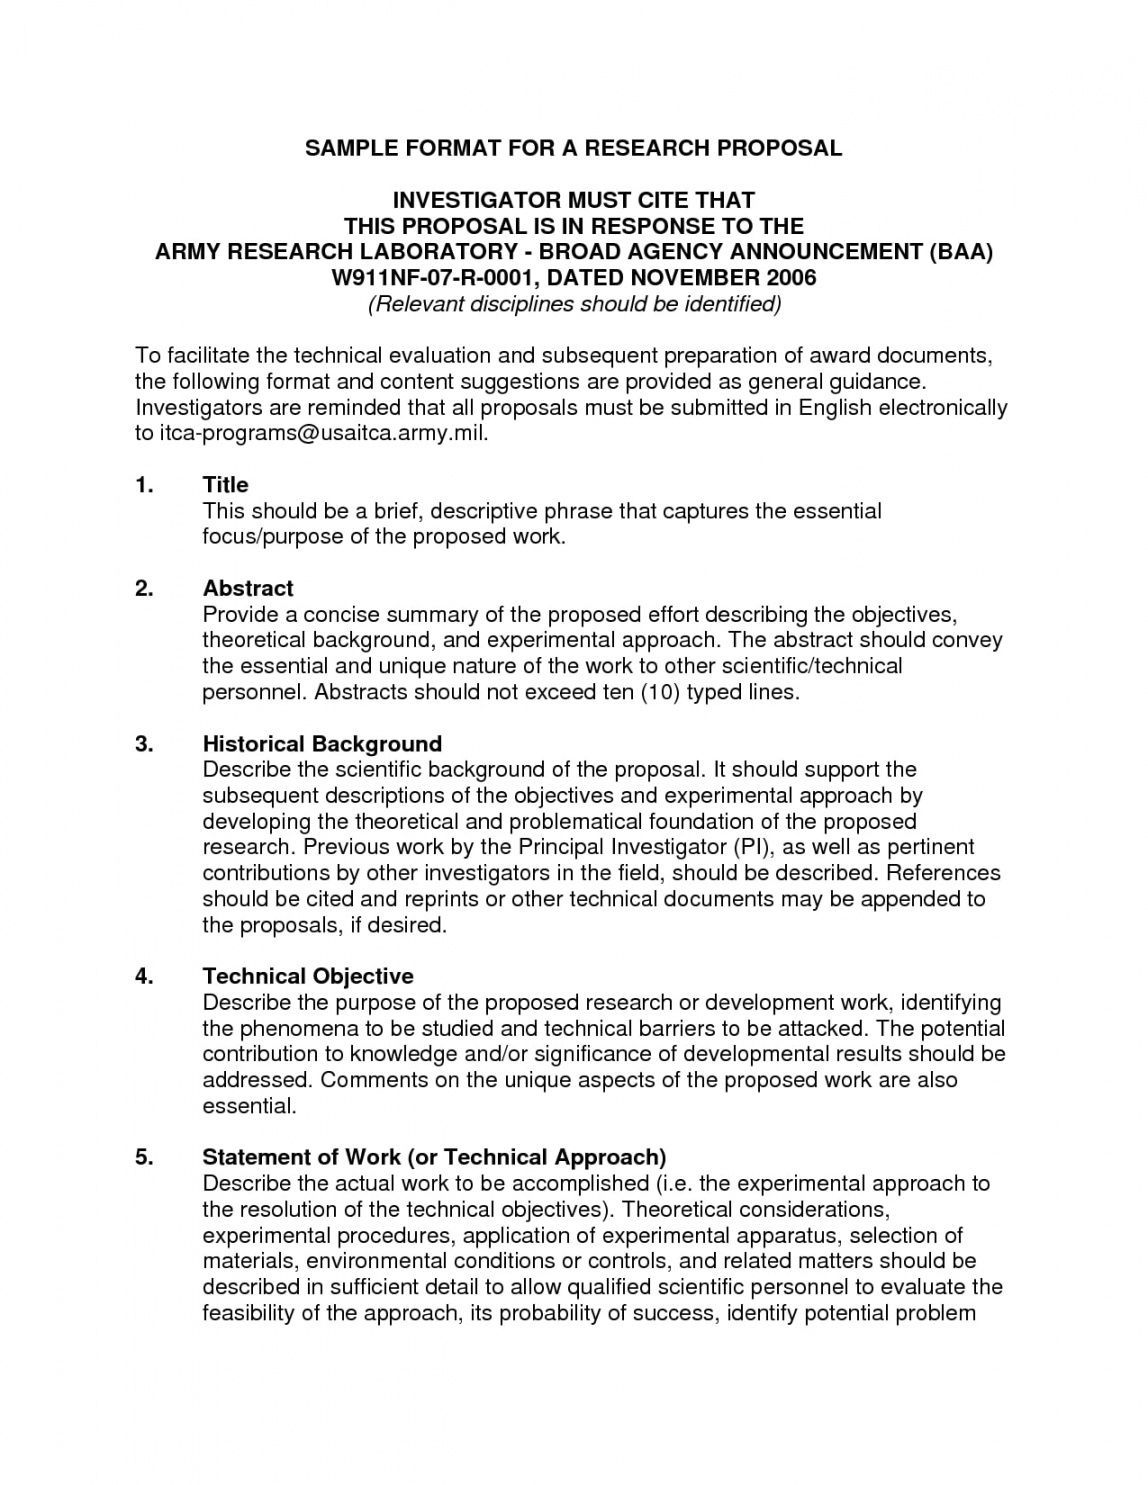 White Paper Proposal Template Research Proposal Example Research Proposal Persuasive Essay Topics